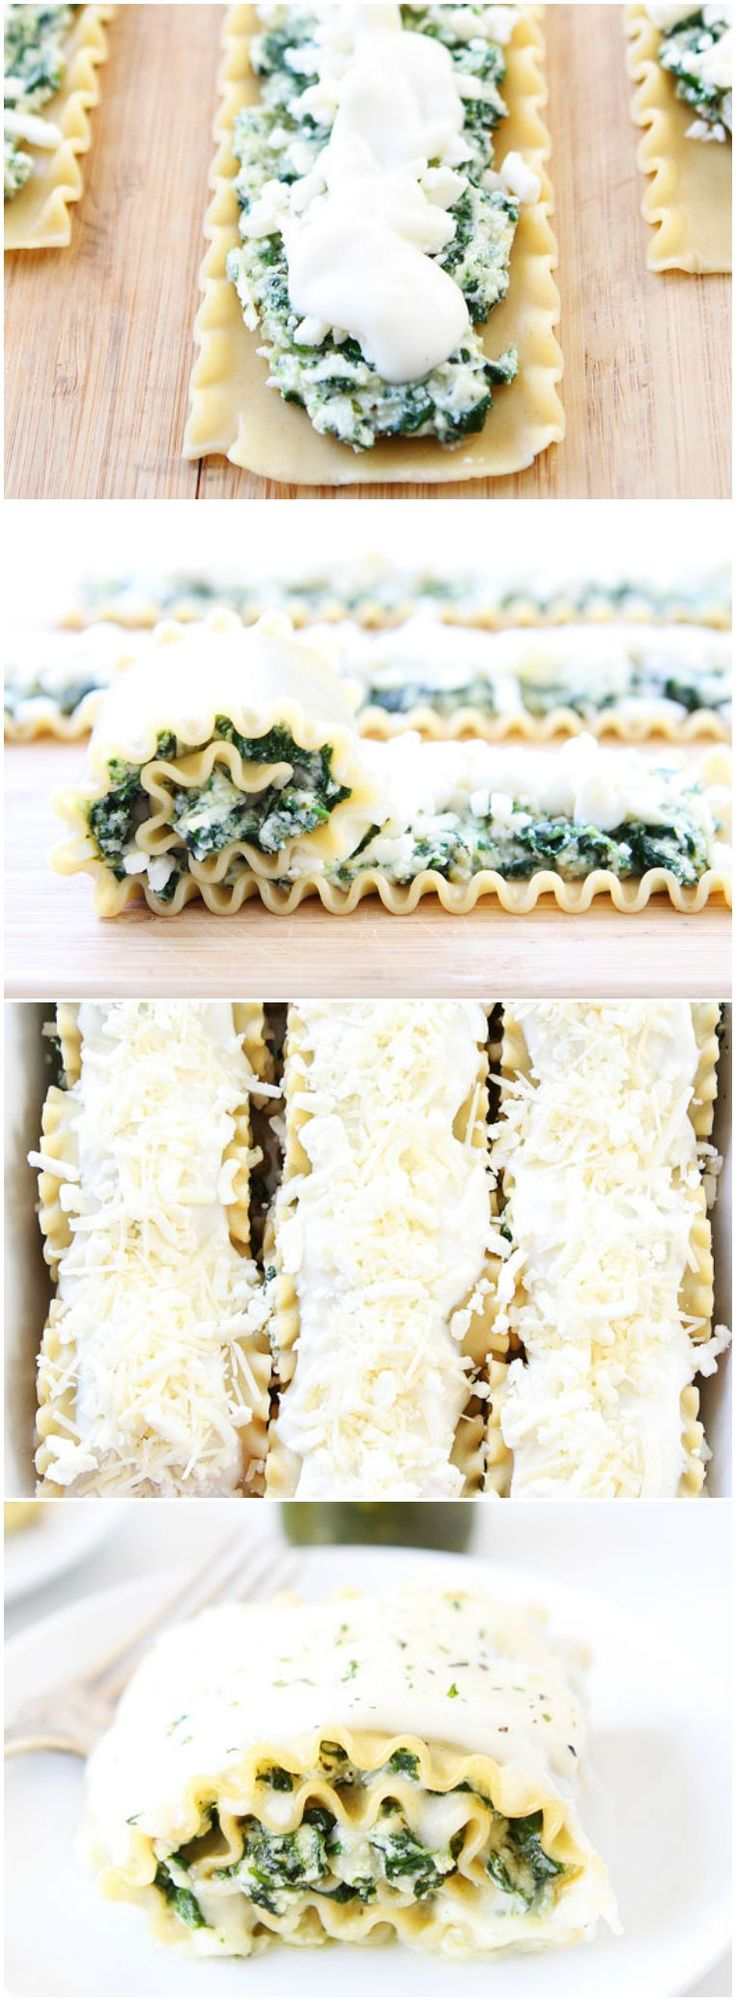 Pesto Lasagna Roll Ups Recipe on twopeasandtheirpod.com One of our favorite meals! Love this twist on classic lasagna! And the roll ups freeze well too!